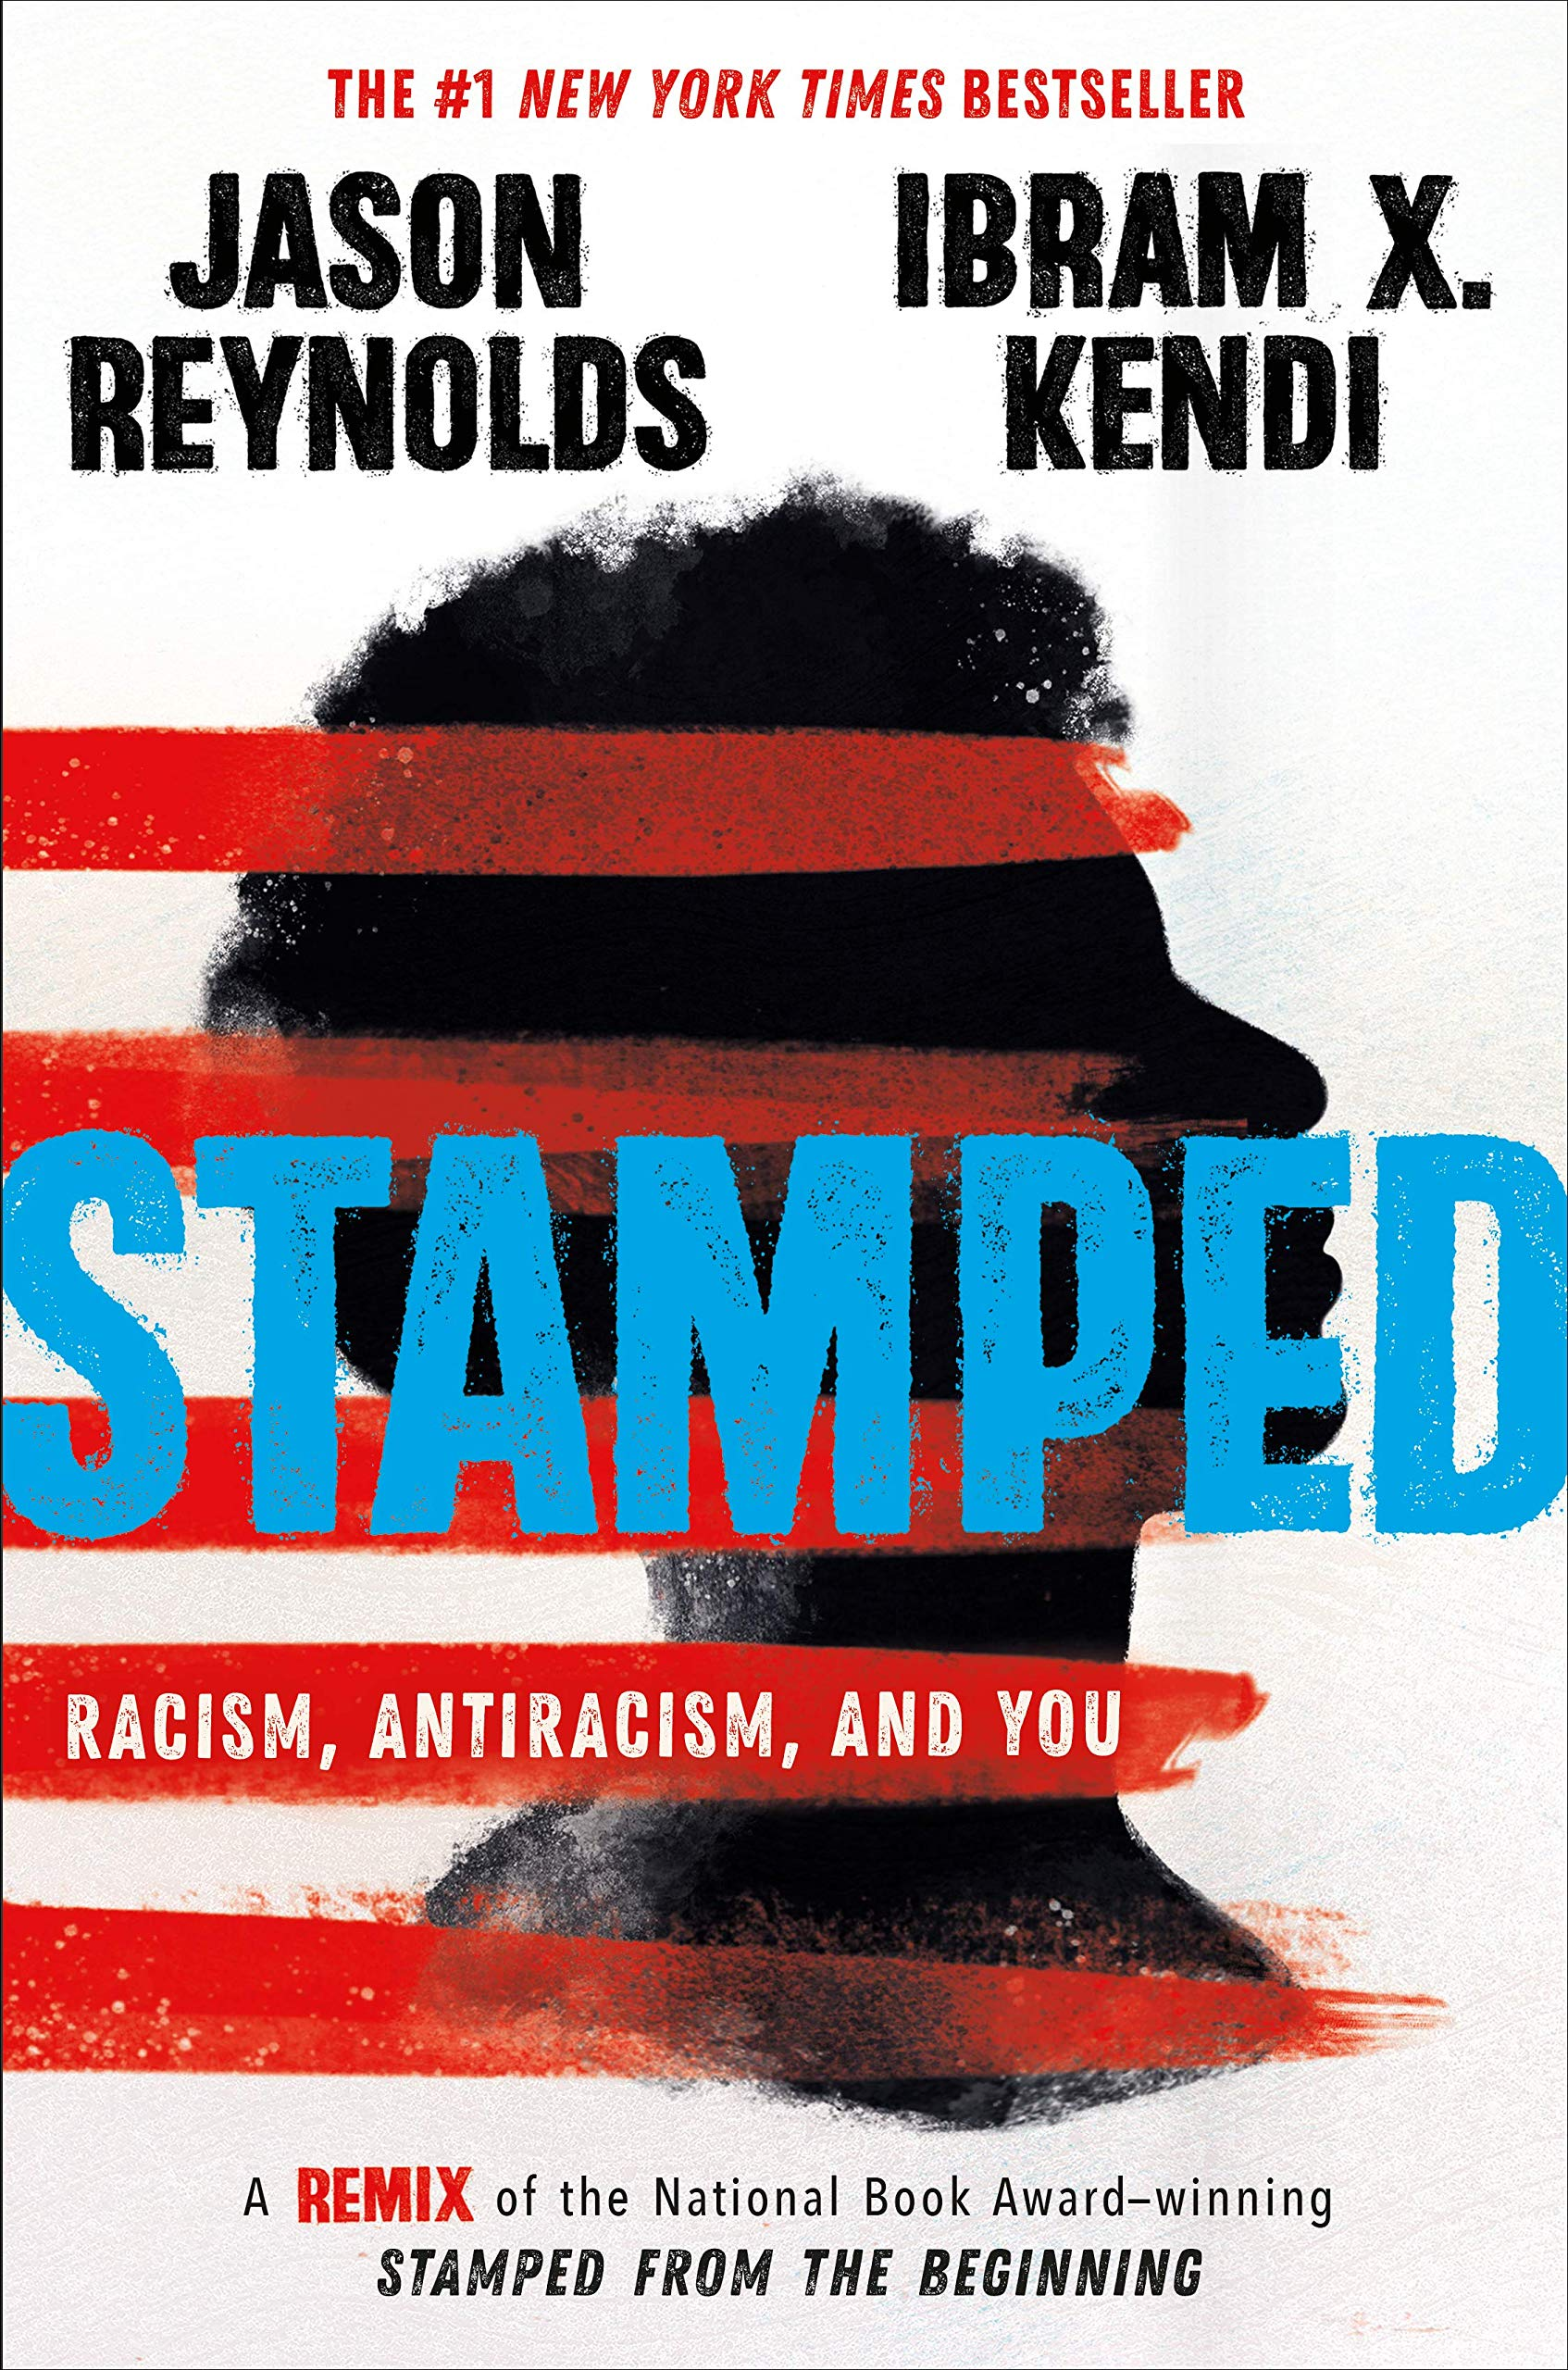 Amazon.com: Stamped: Racism, Antiracism, and You: A Remix of the ...